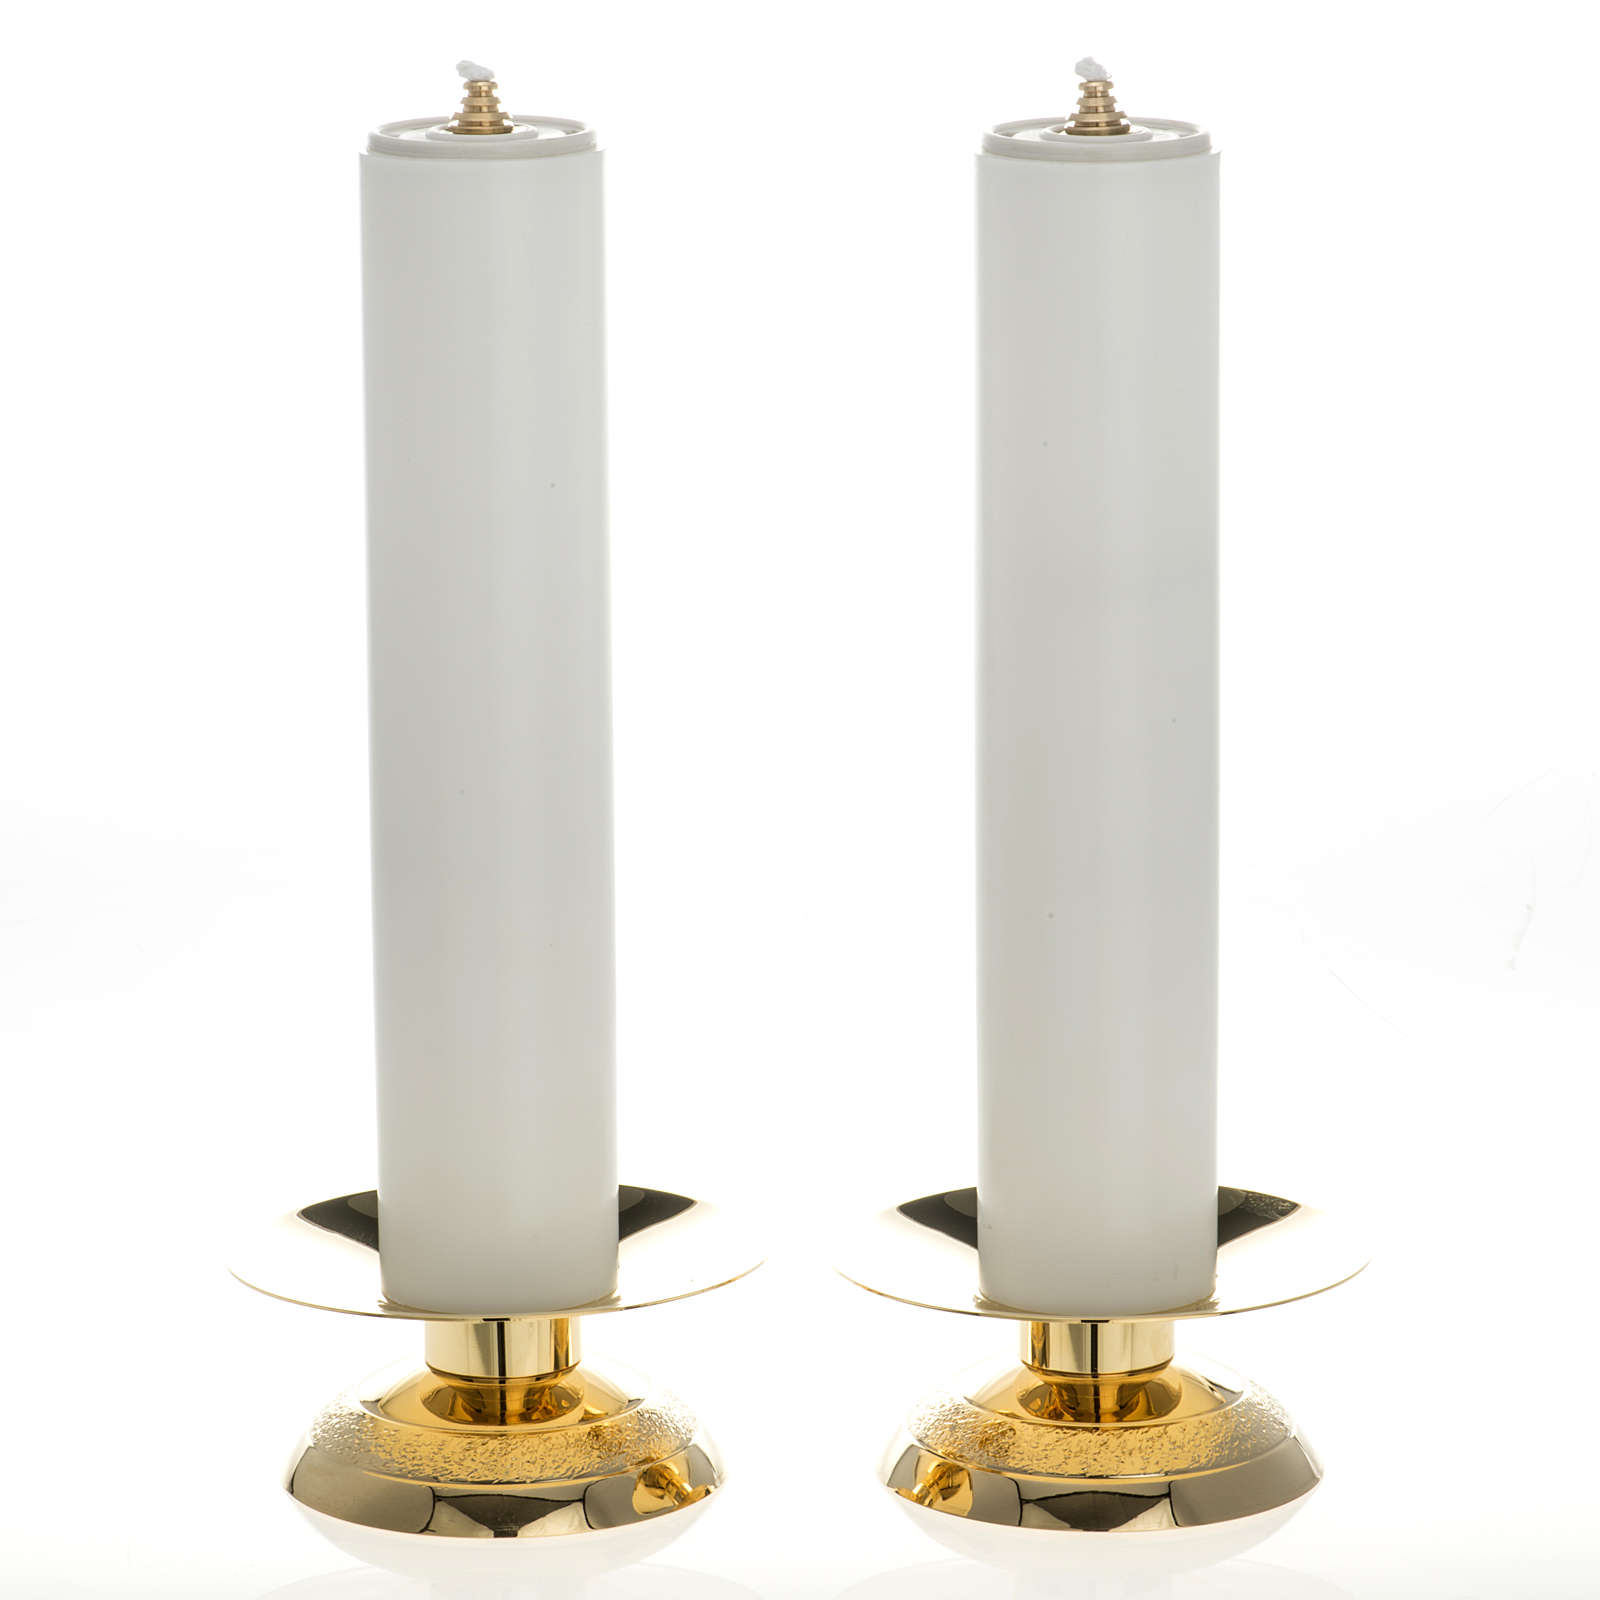 Candle holders and fake candles, two piece set 4